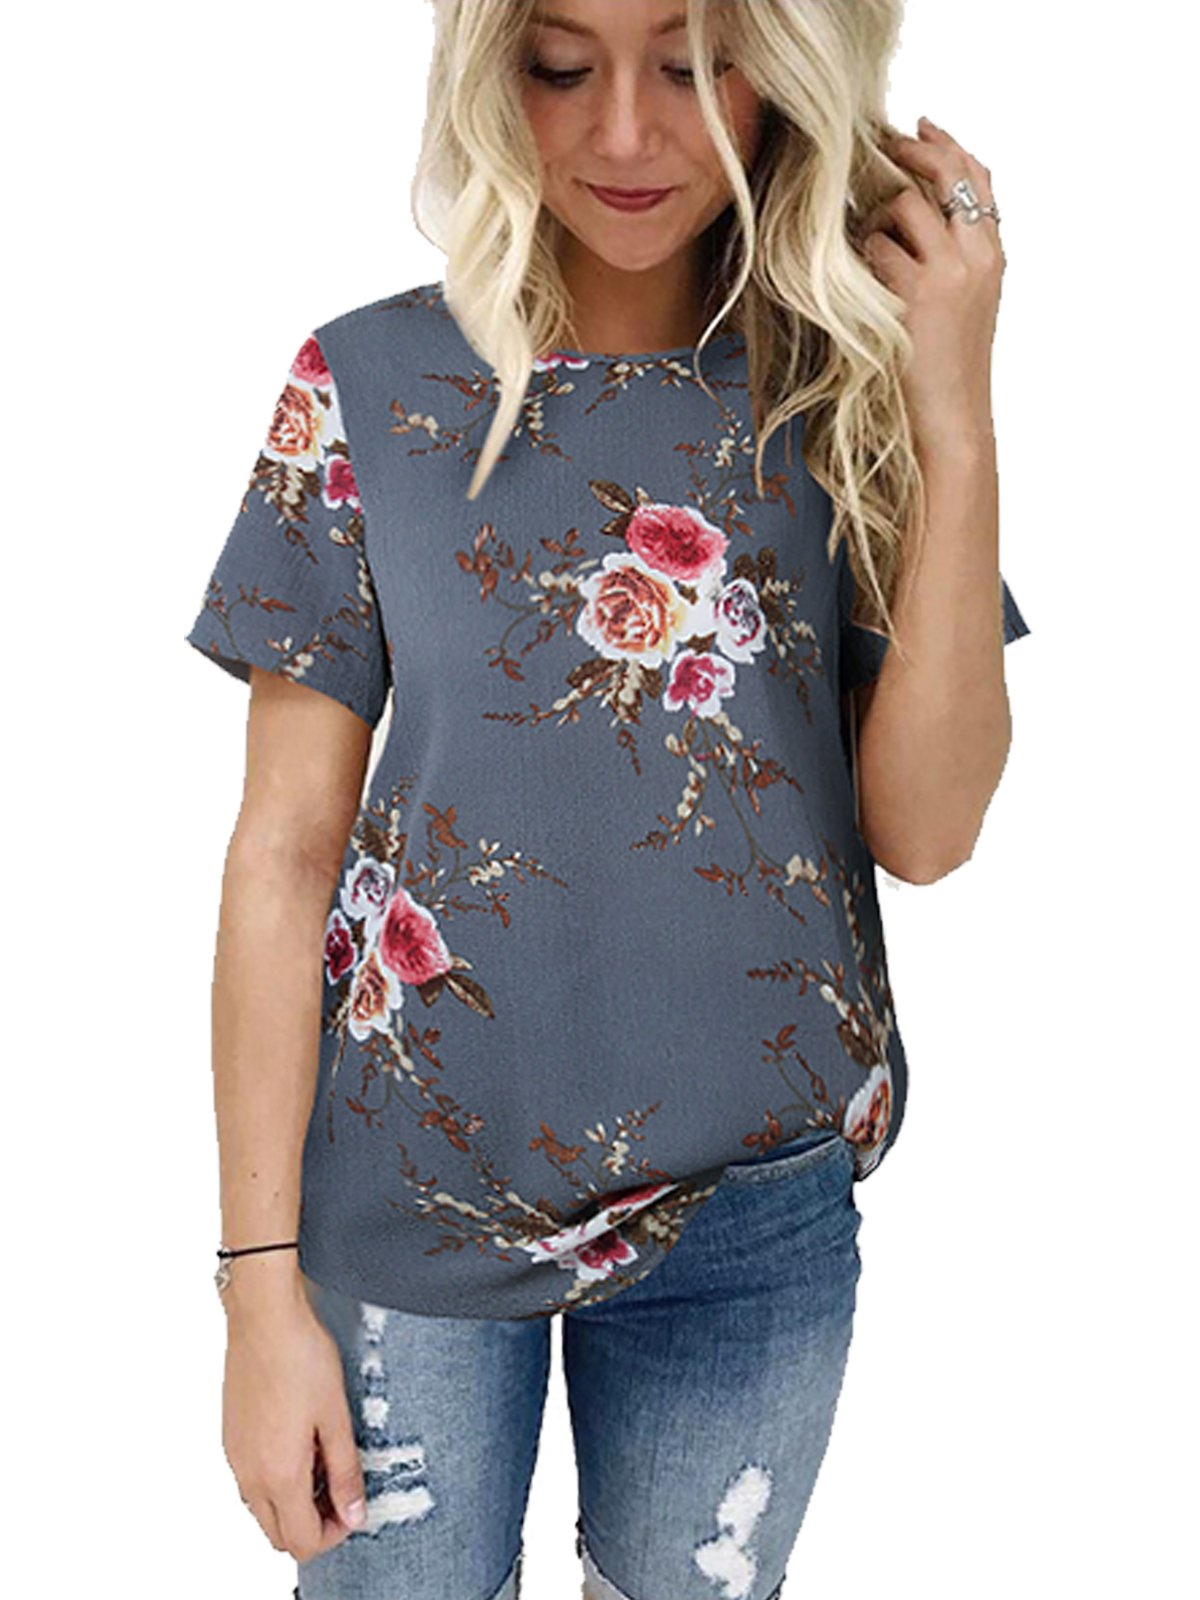 VYNCS Women's O Neck Short Sleeve Casual T-Shirt Chiffon Floral Print Tops Blouse for Summer (Grey, X-Large)